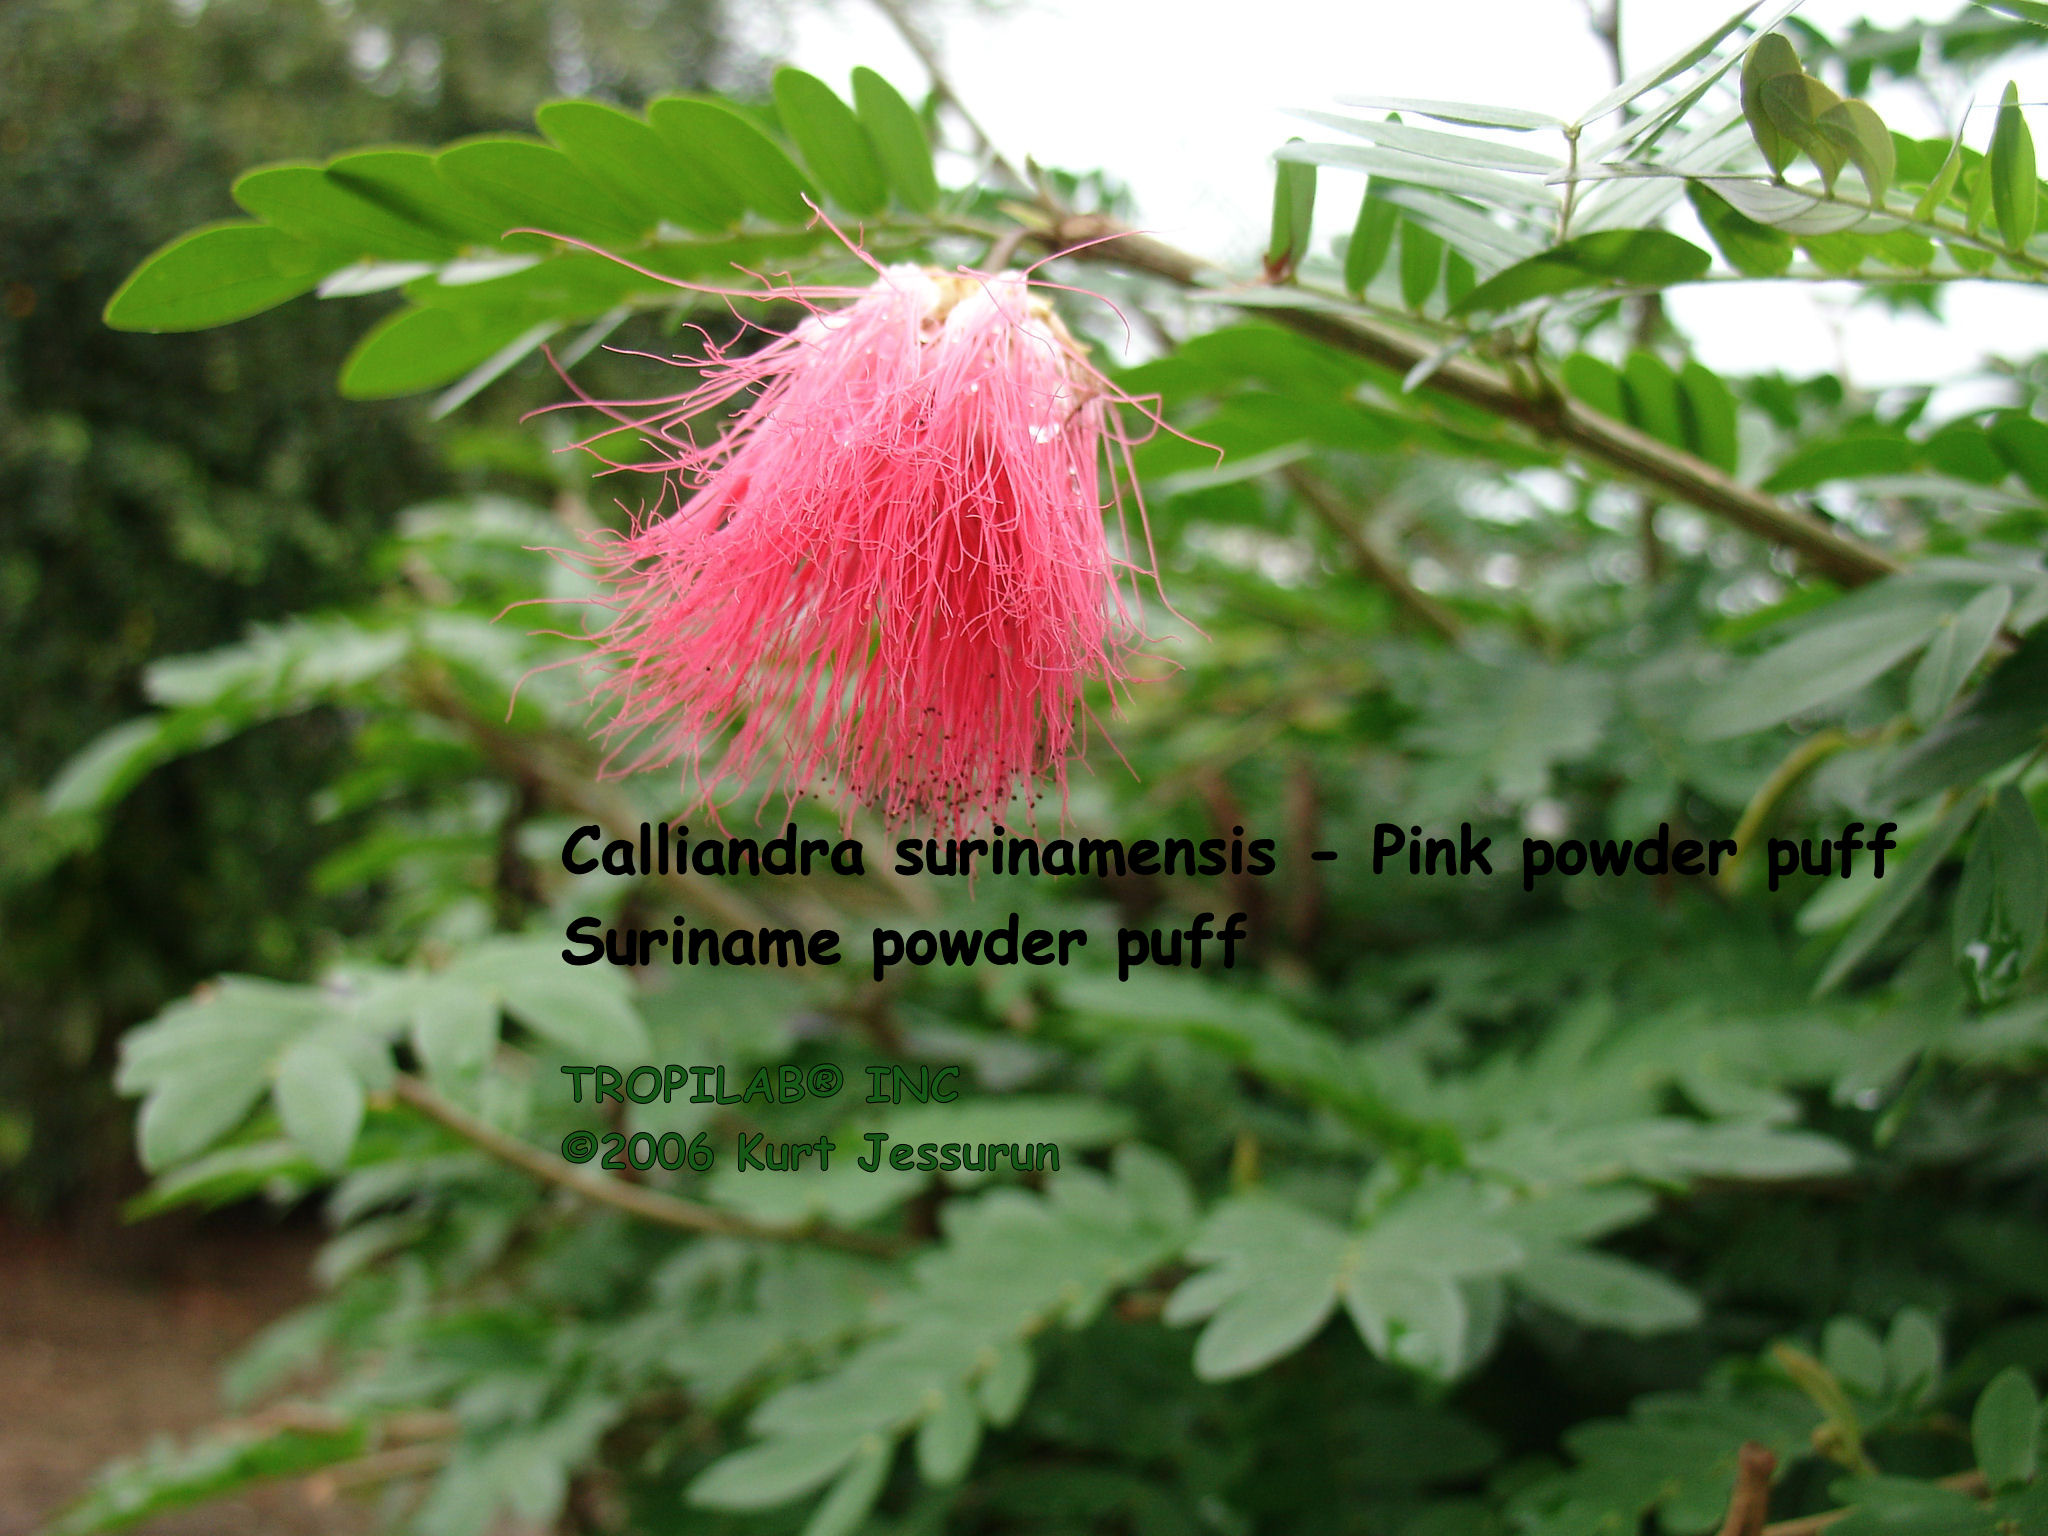 Calliandra surinamensis - Surinam powder puff